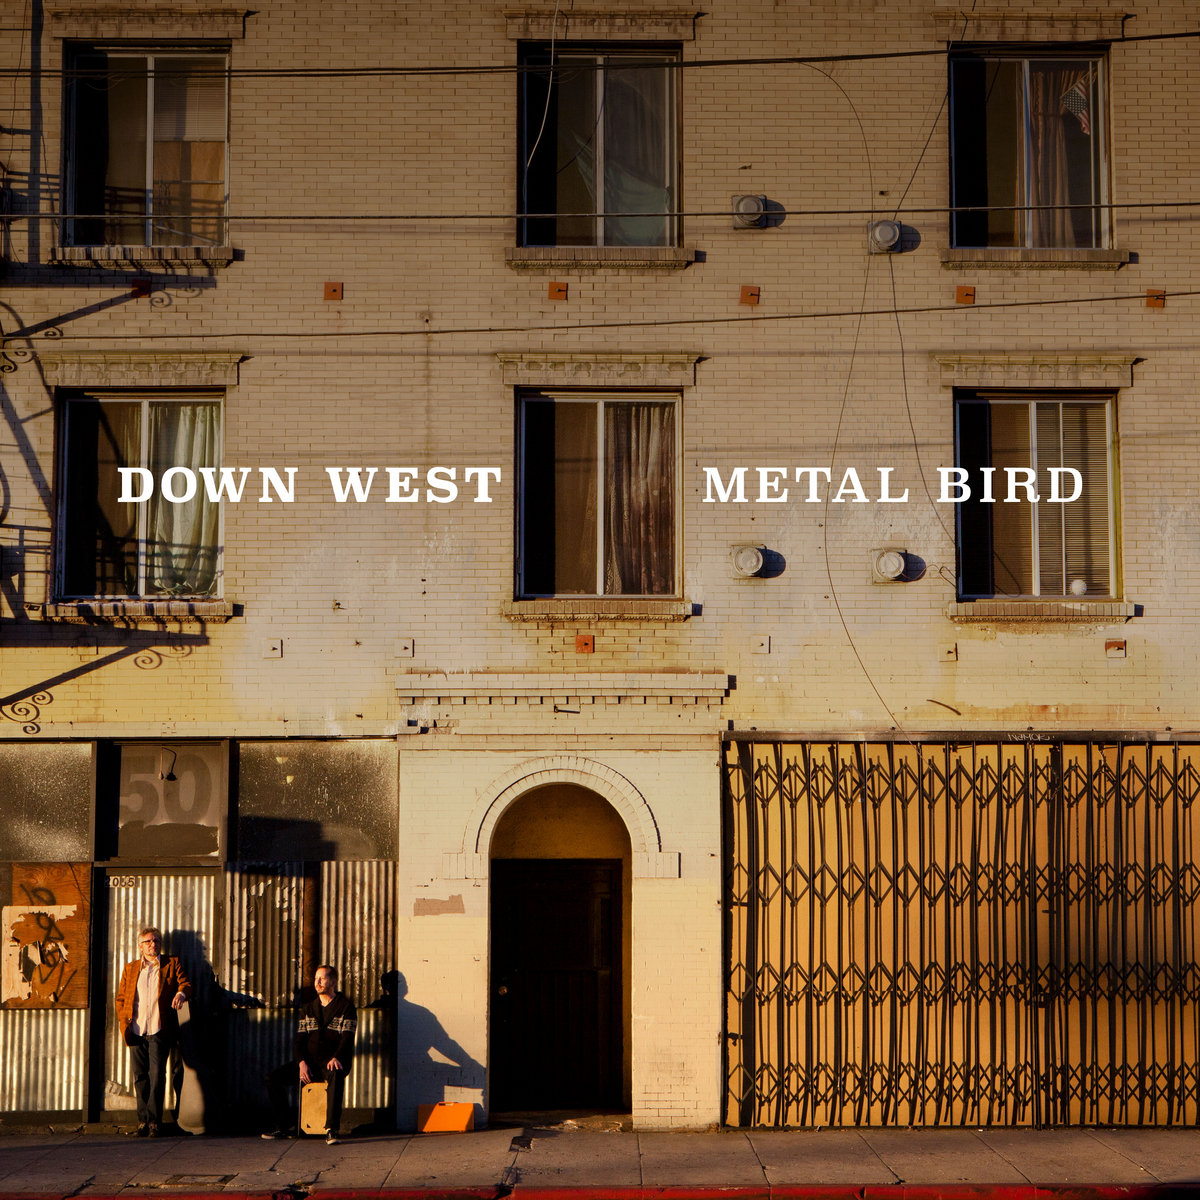 Metal Bird by Down West